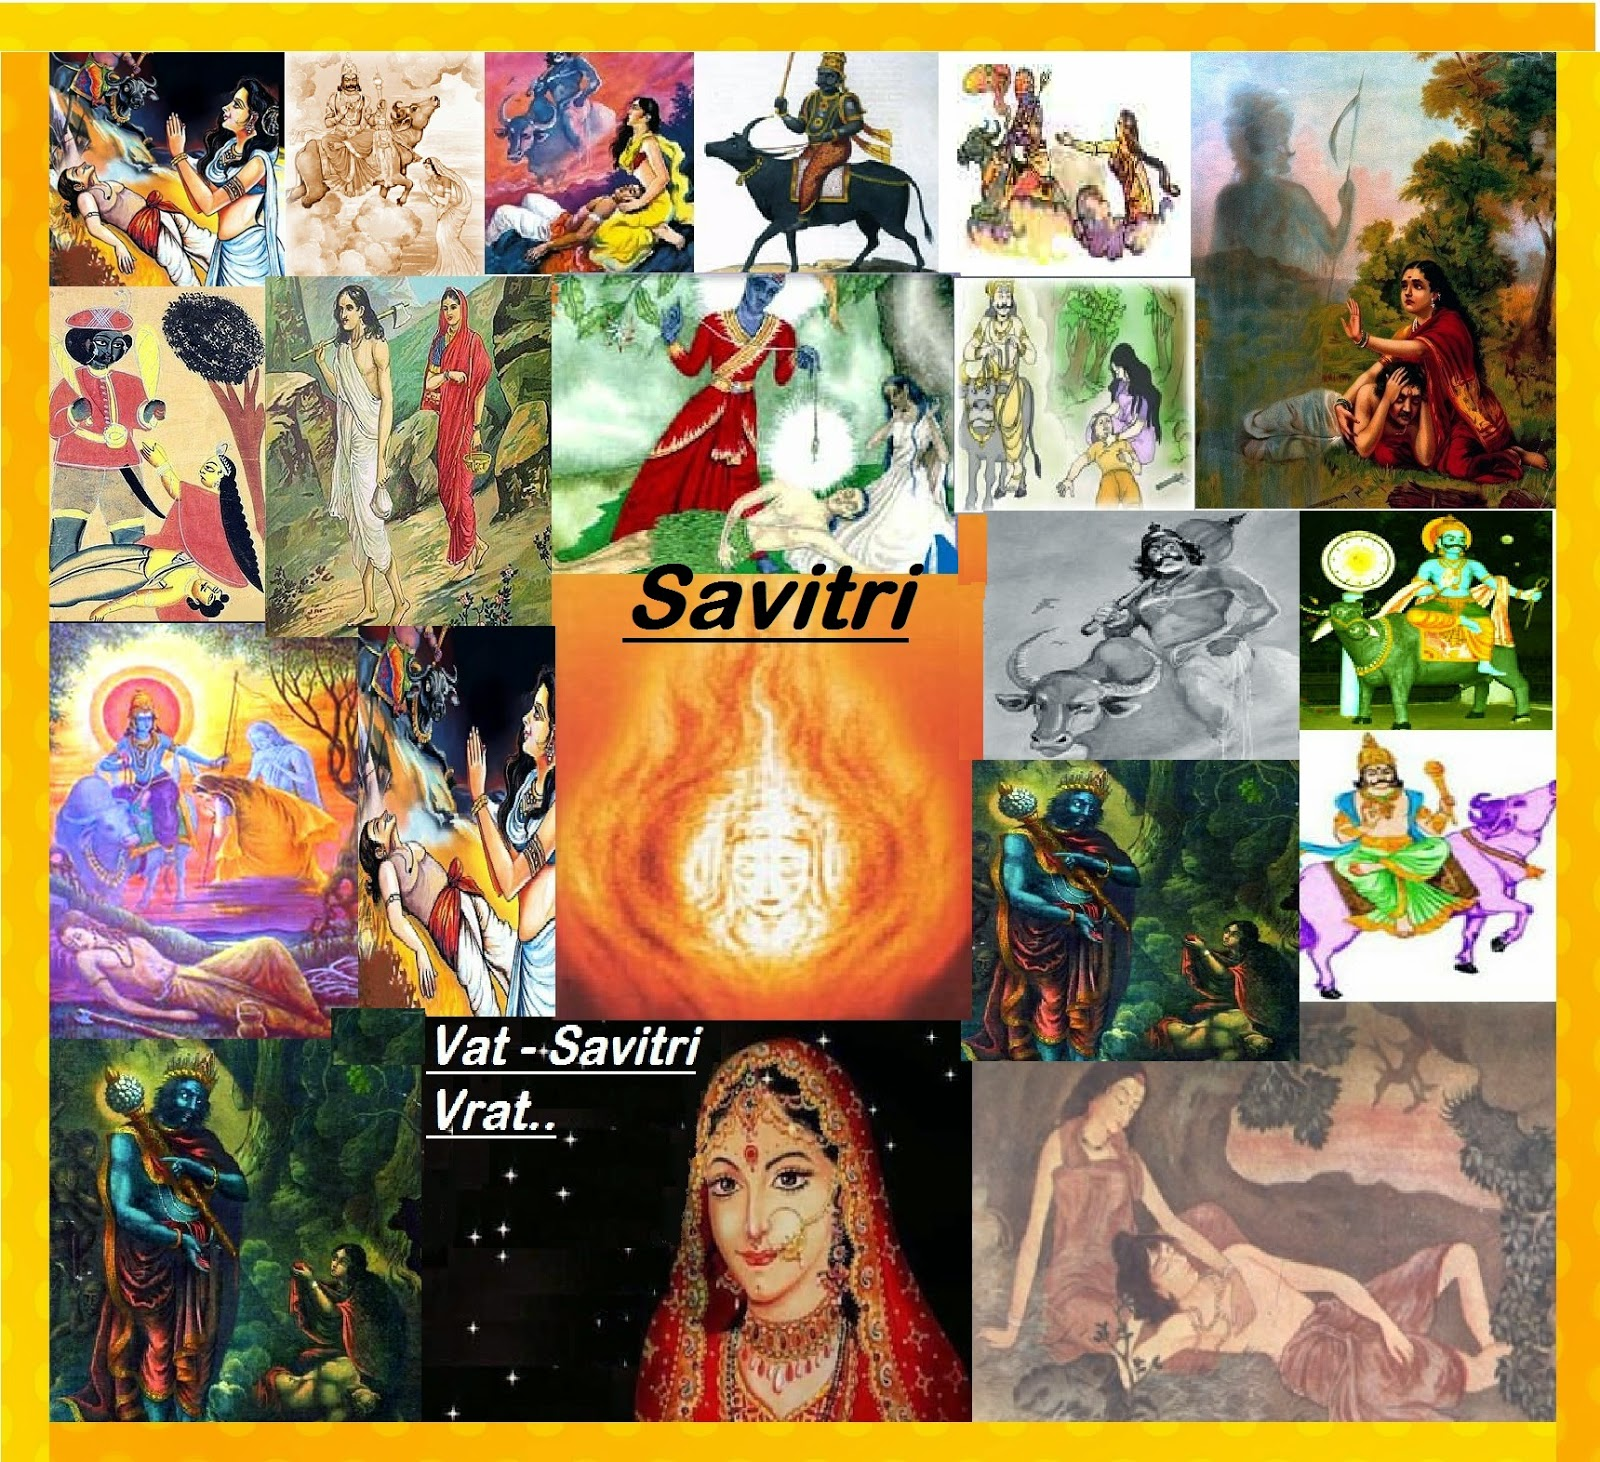 Satyavan Savitri Images for free download